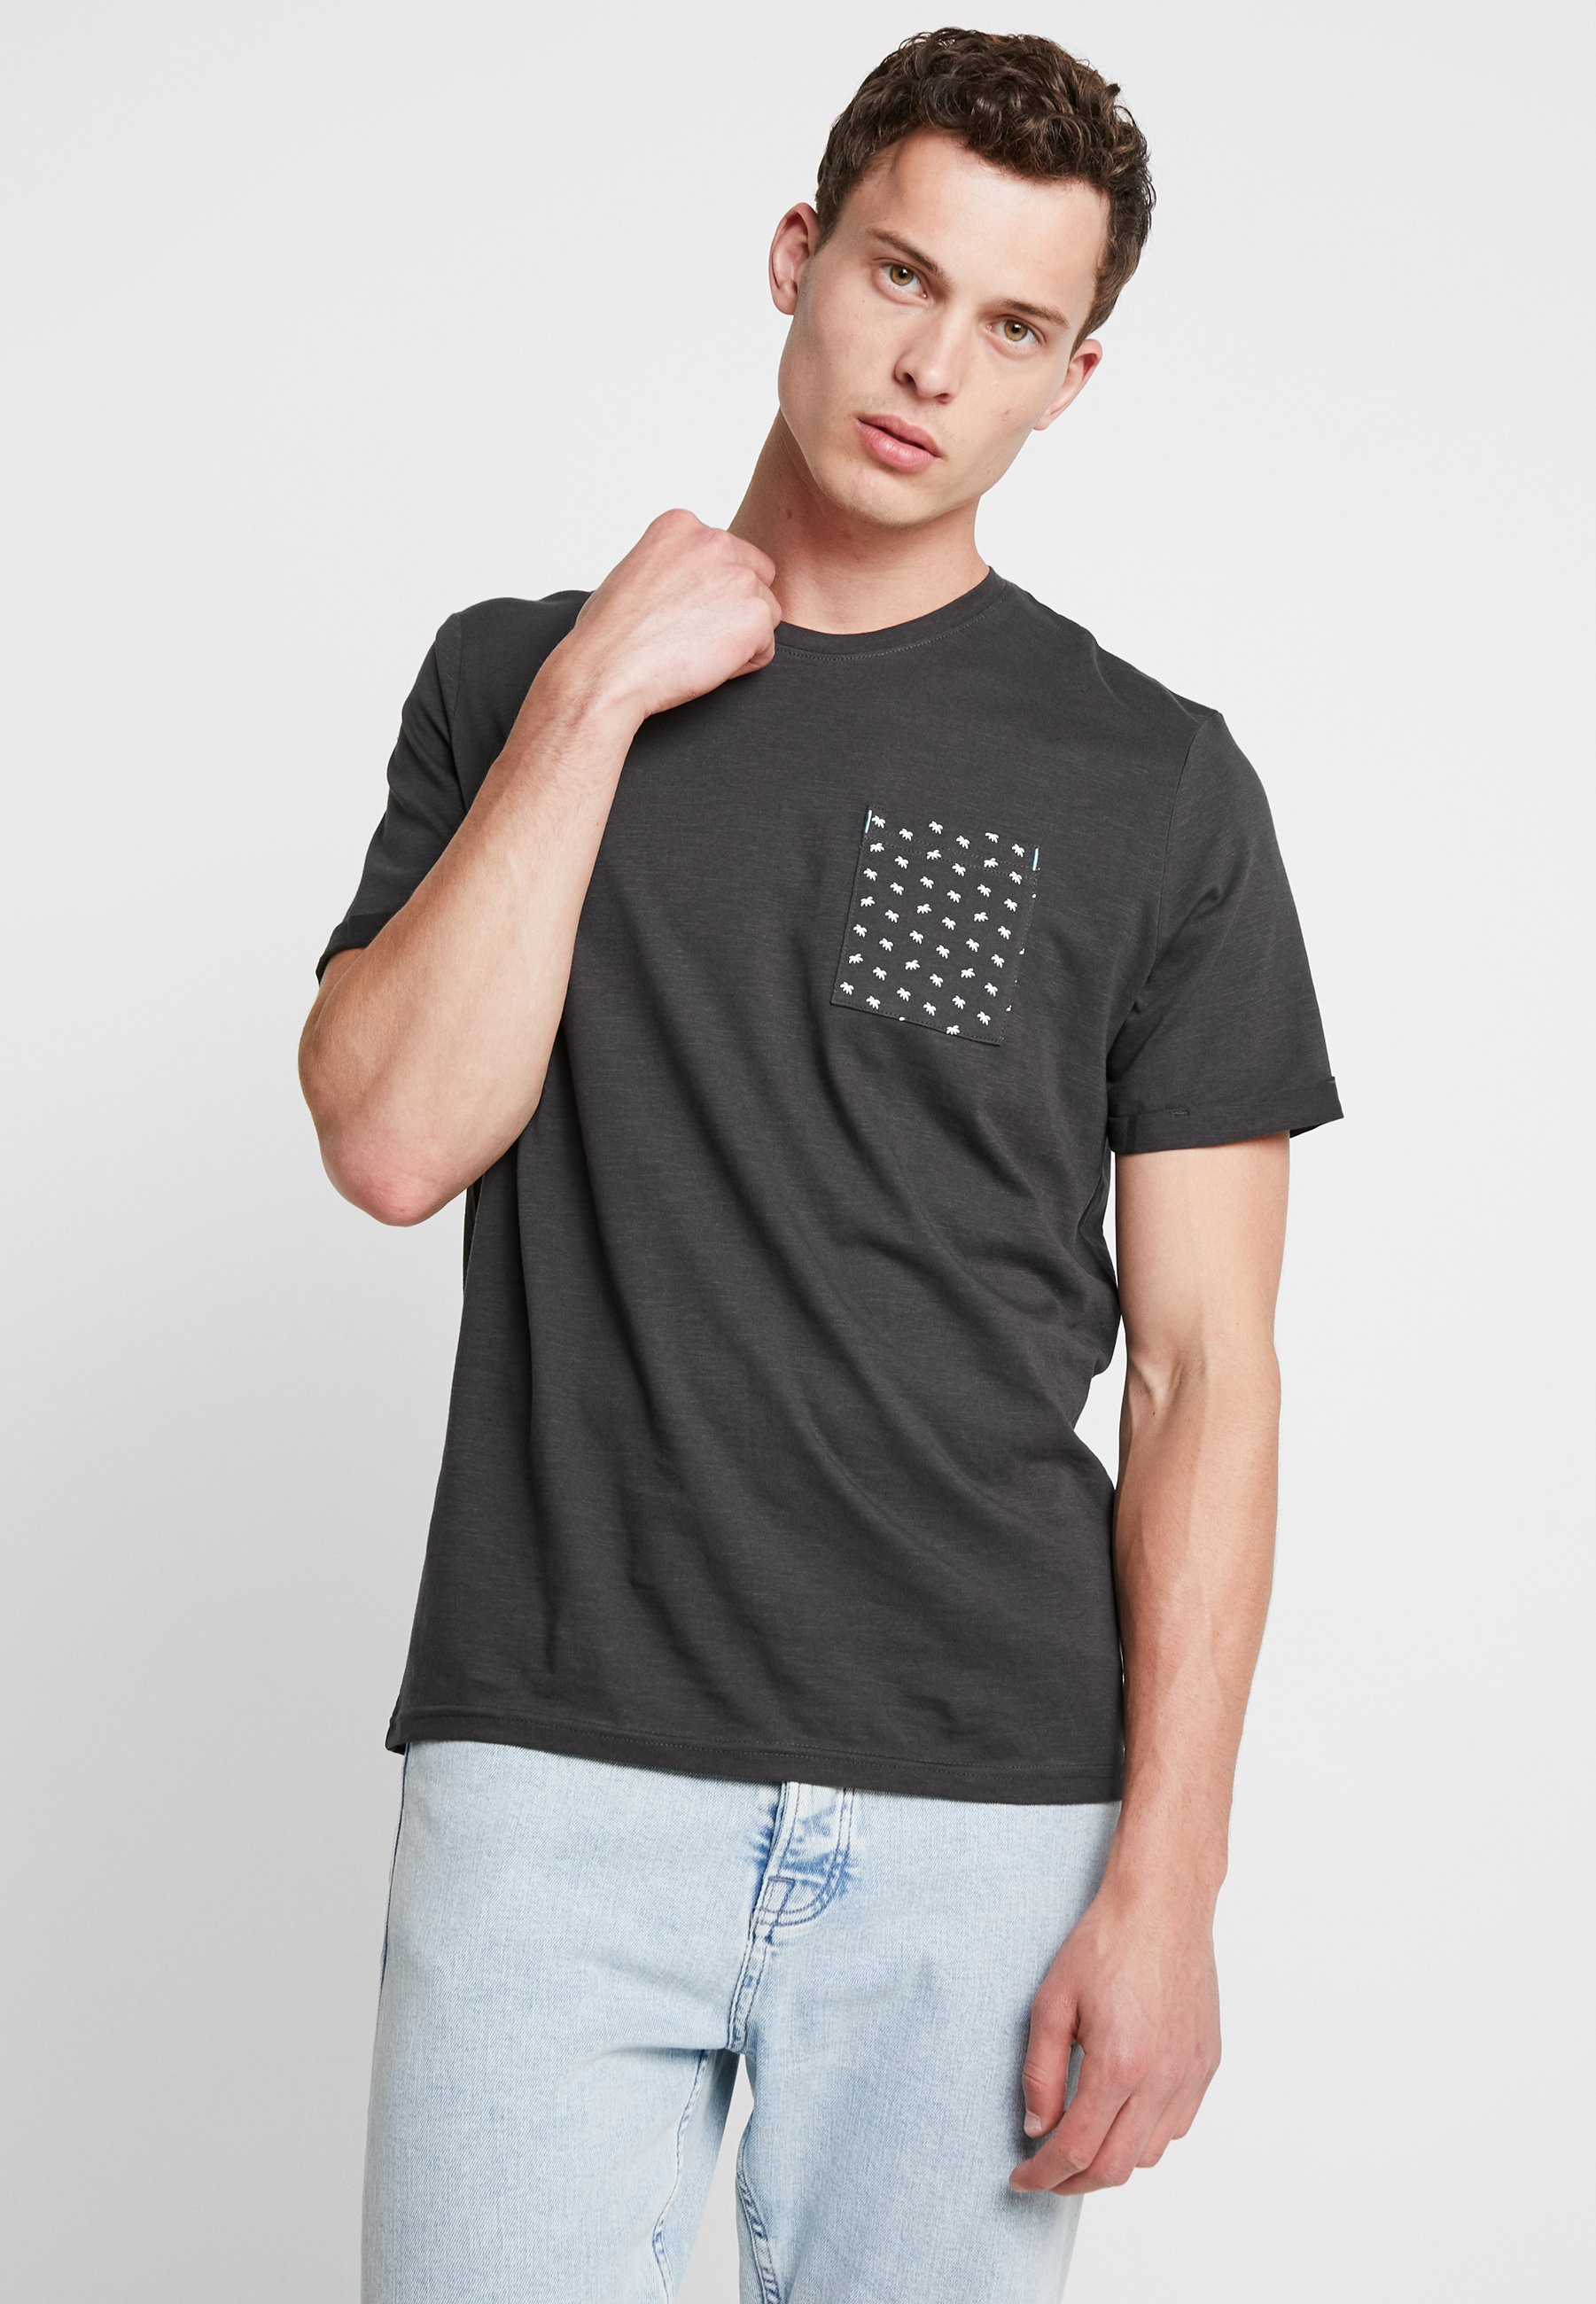 shirt ImpriméPhanton Dark Tailor Grey T Tom VGSzpqUM